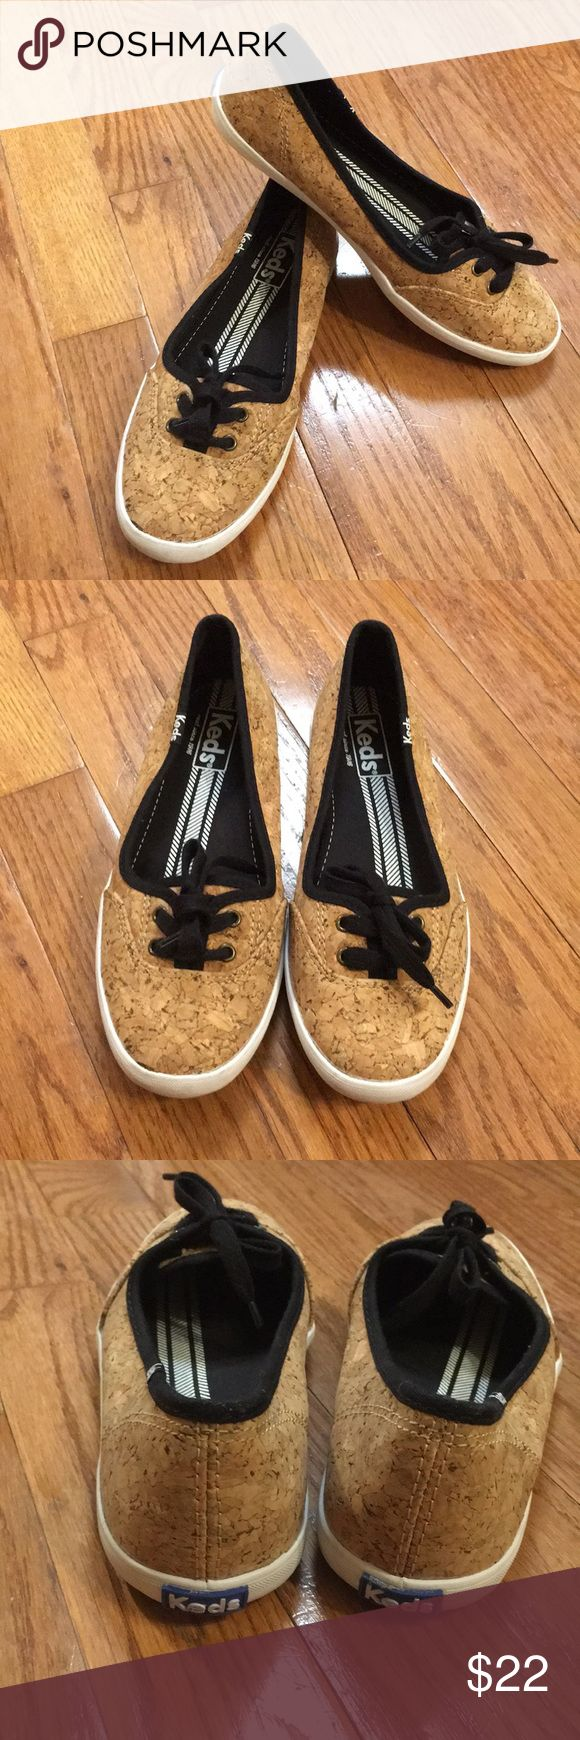 Keds Teacup Cork Sneakers EUC, these are not your run of the mill Keds. An eye-catching cork finish adds an earthy twist to the slim, graceful profile of a favorite Keds slip-on. Keds Shoes Sneakers